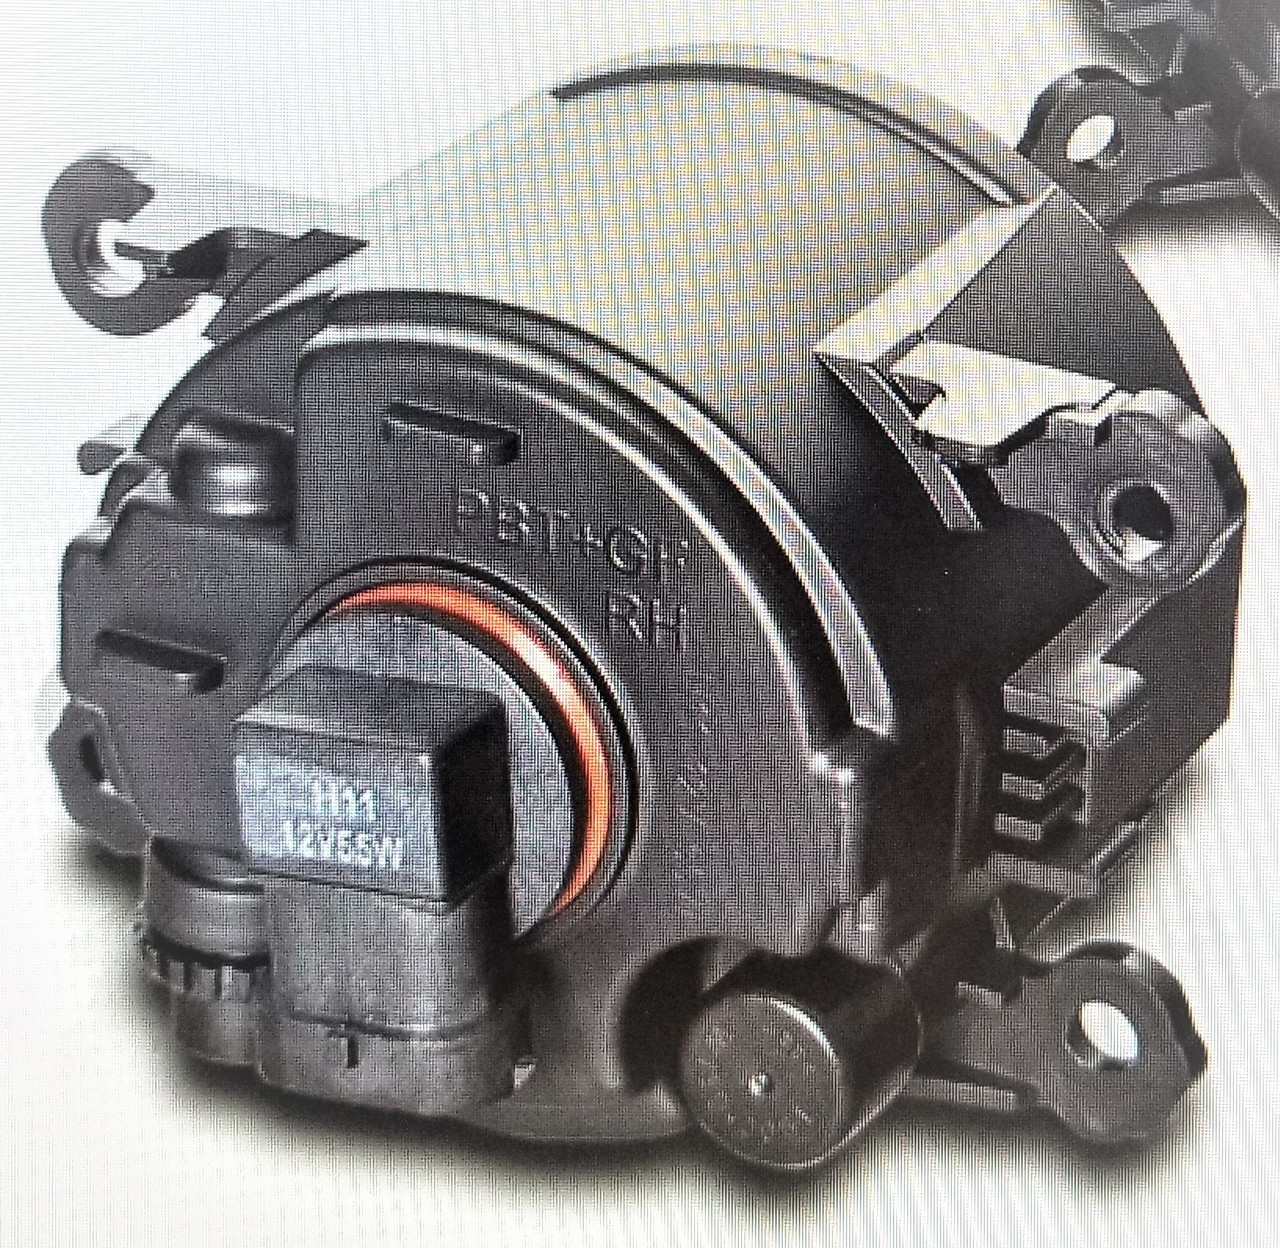 Ford Focus 2008 2009 2010 2011 2012 2013 2014 Right